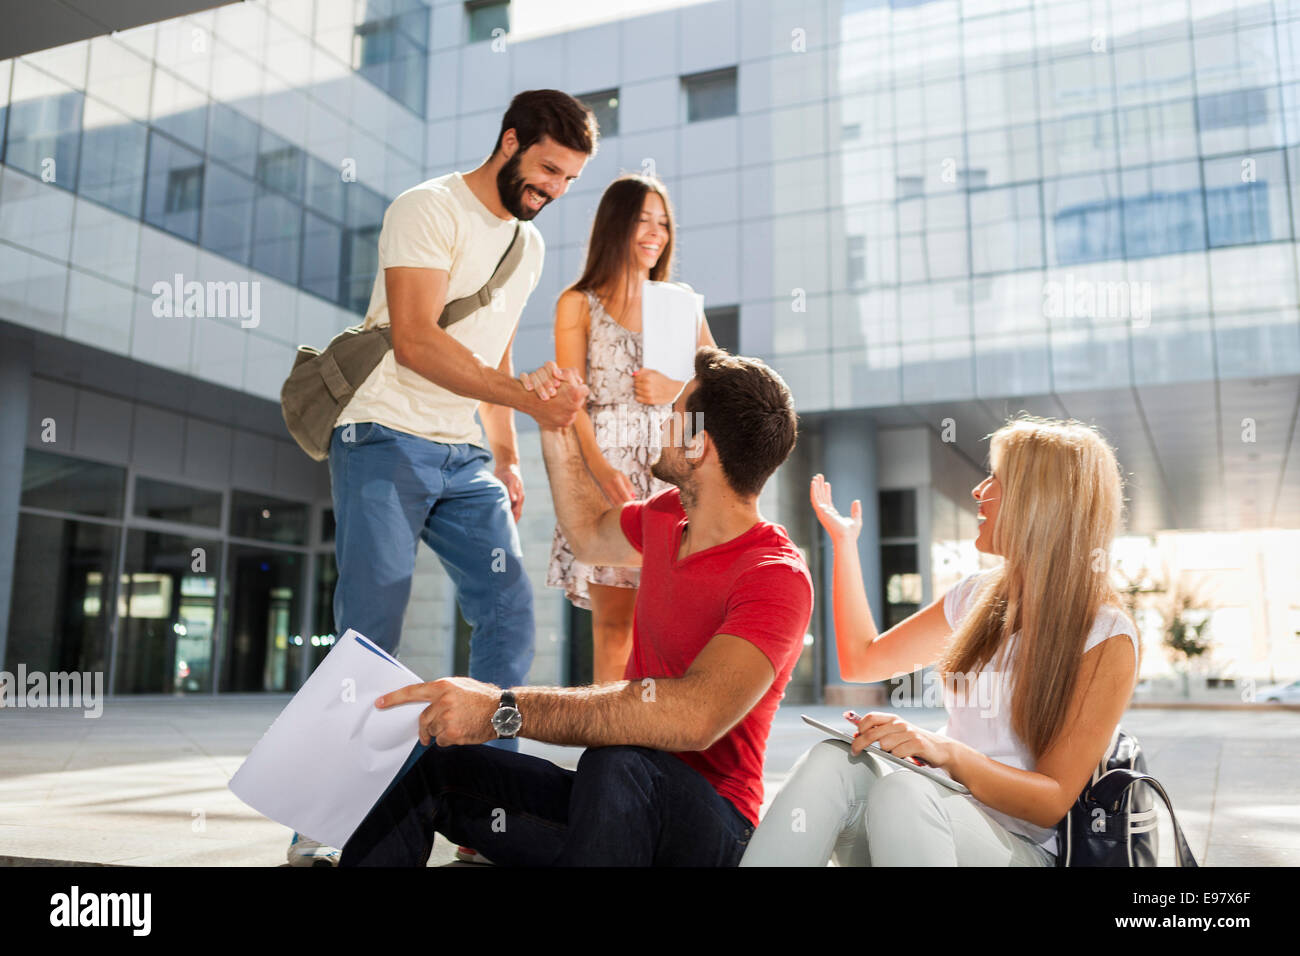 Male students shaking hands on campus grounds - Stock Image